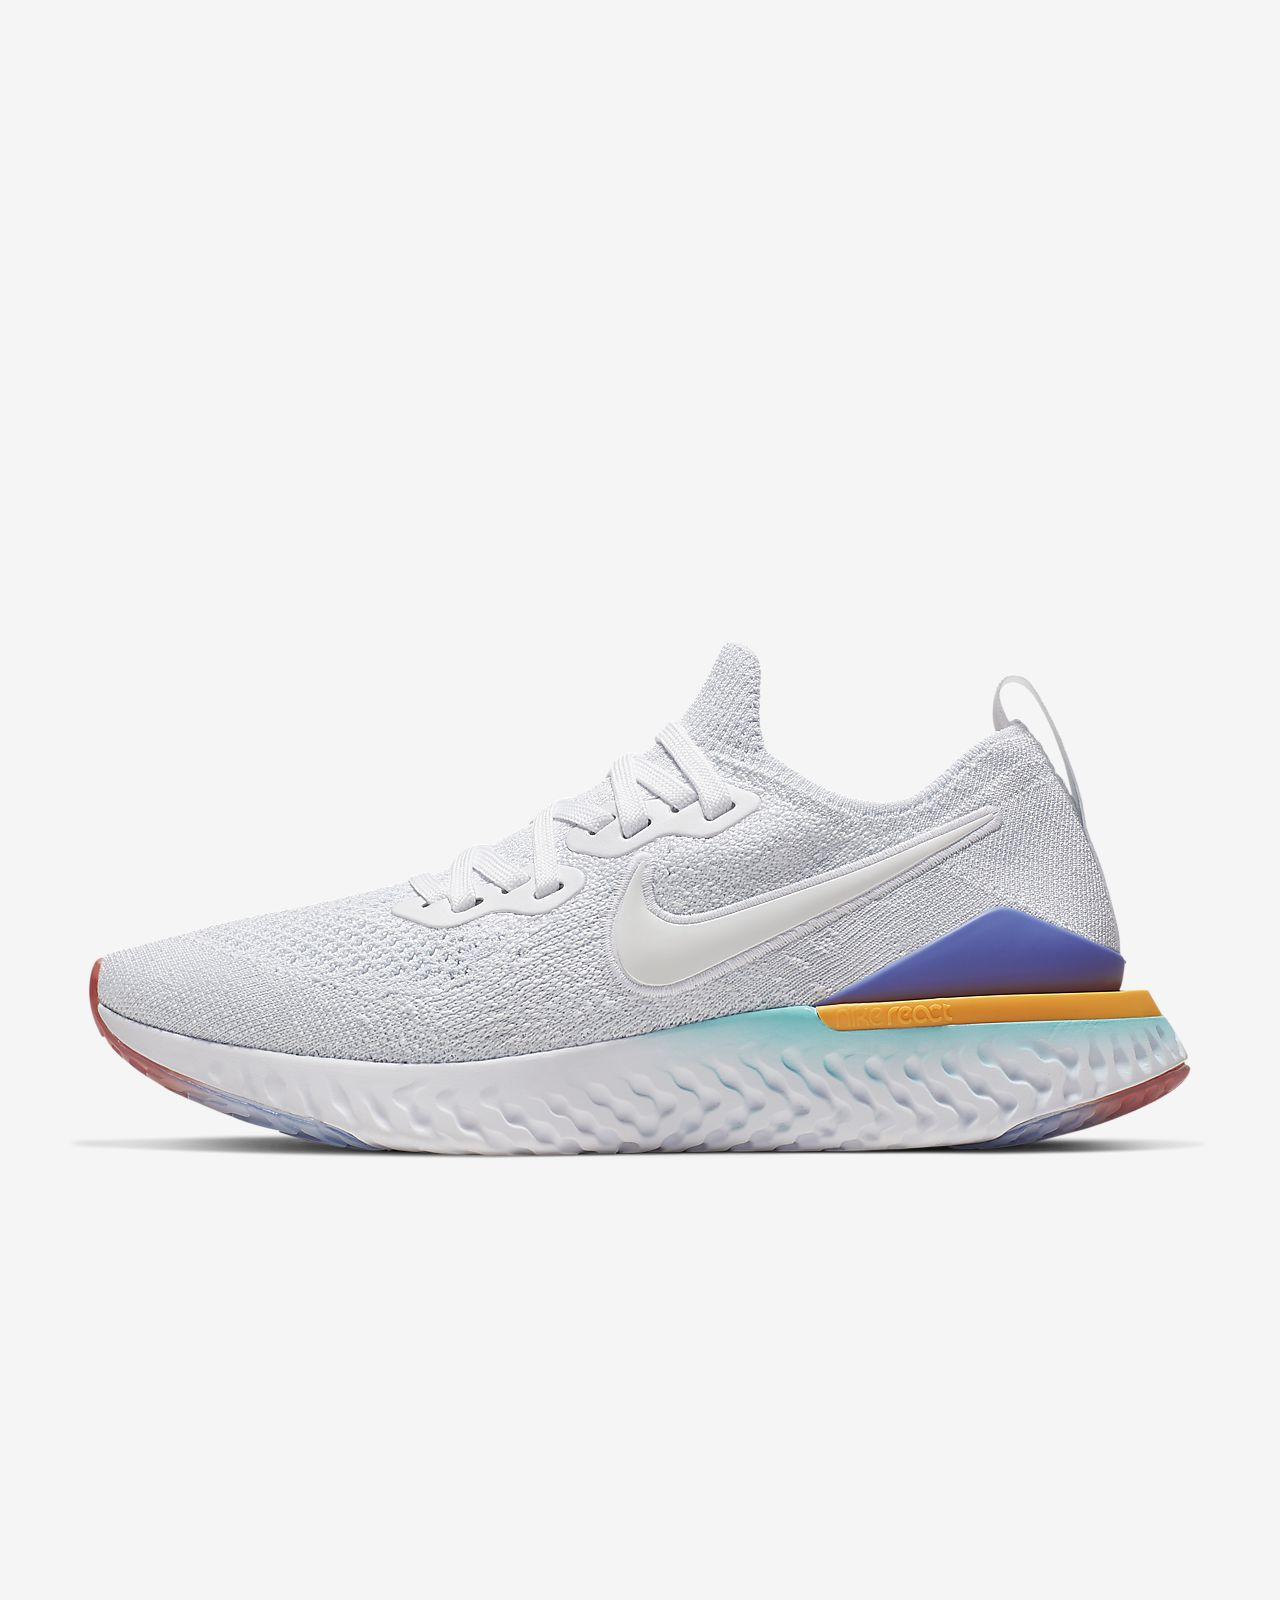 Athletic Shoes 2019 New Style Womens Nike Epic React Flyknit Size 8 Running Shoes Training Black Gray